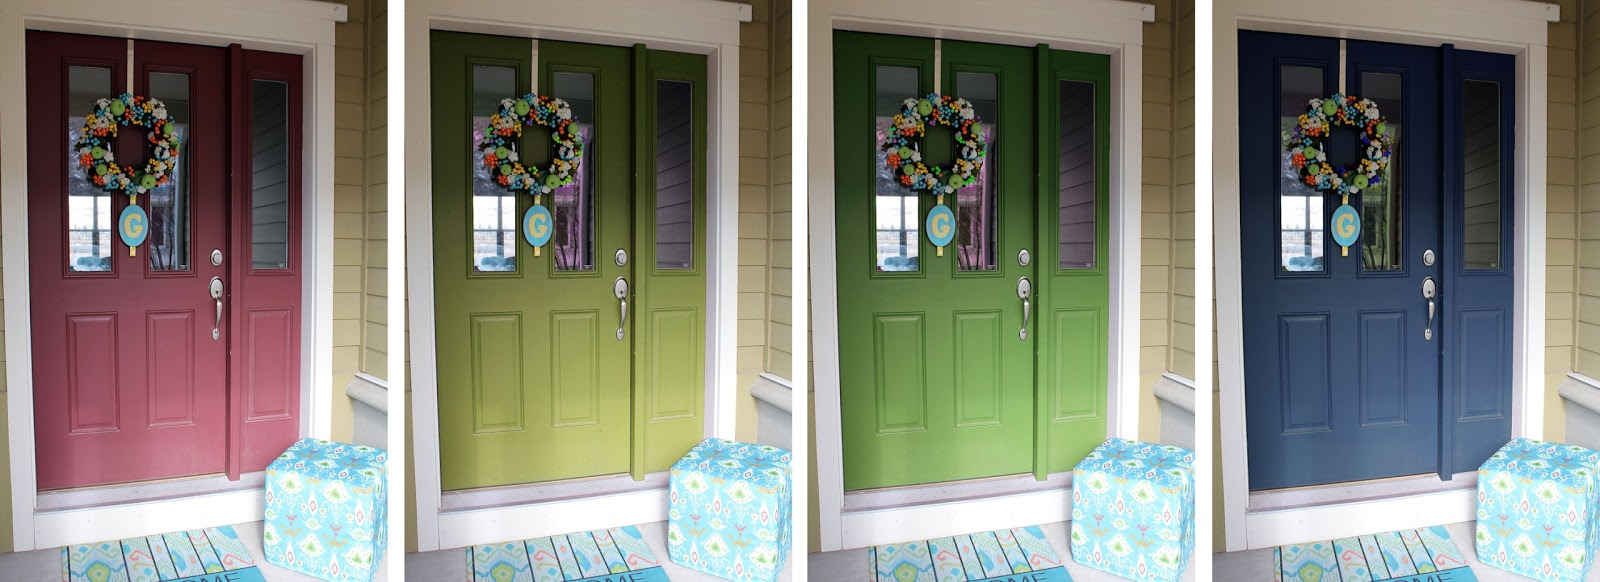 worth pinning: changing the color of the front door